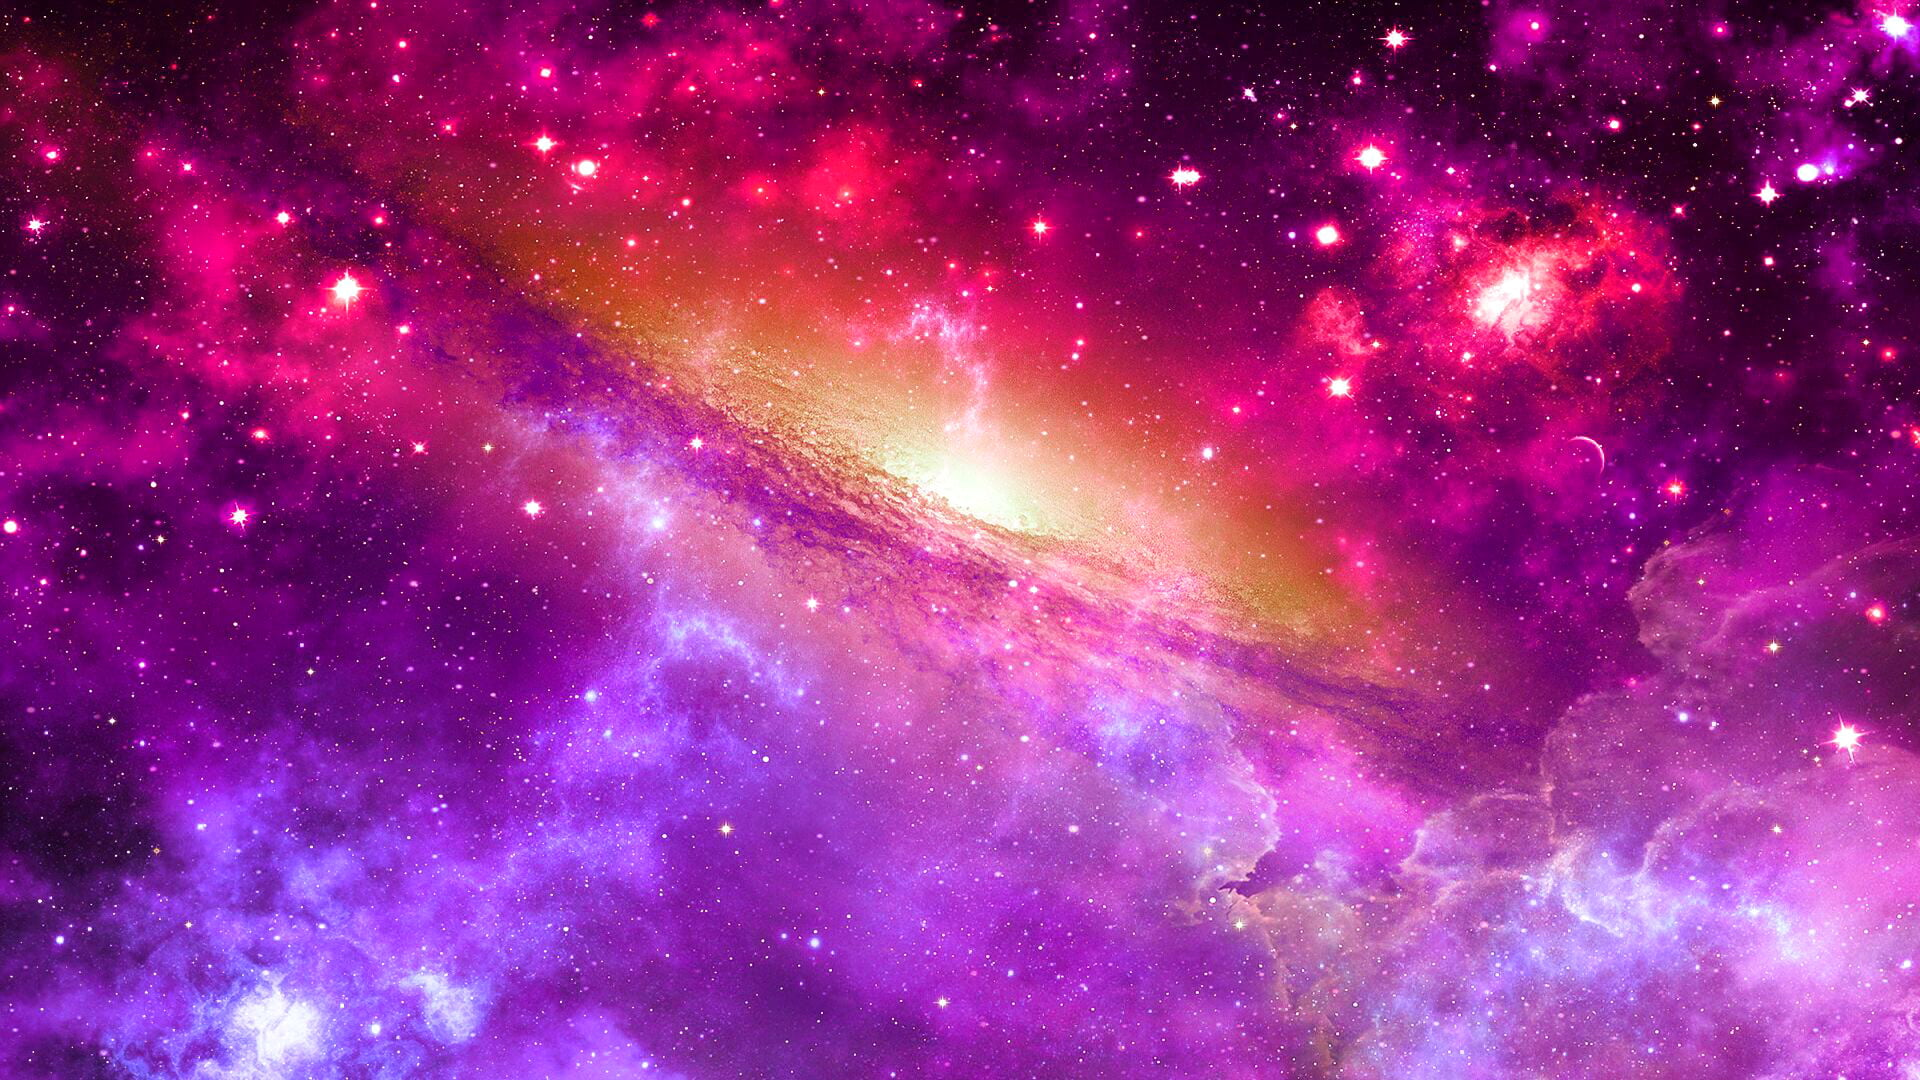 Iphone 2g Wallpaper For Iphone X Purple And Pink Galaxy Hd Wallpaper Wallpaper Flare